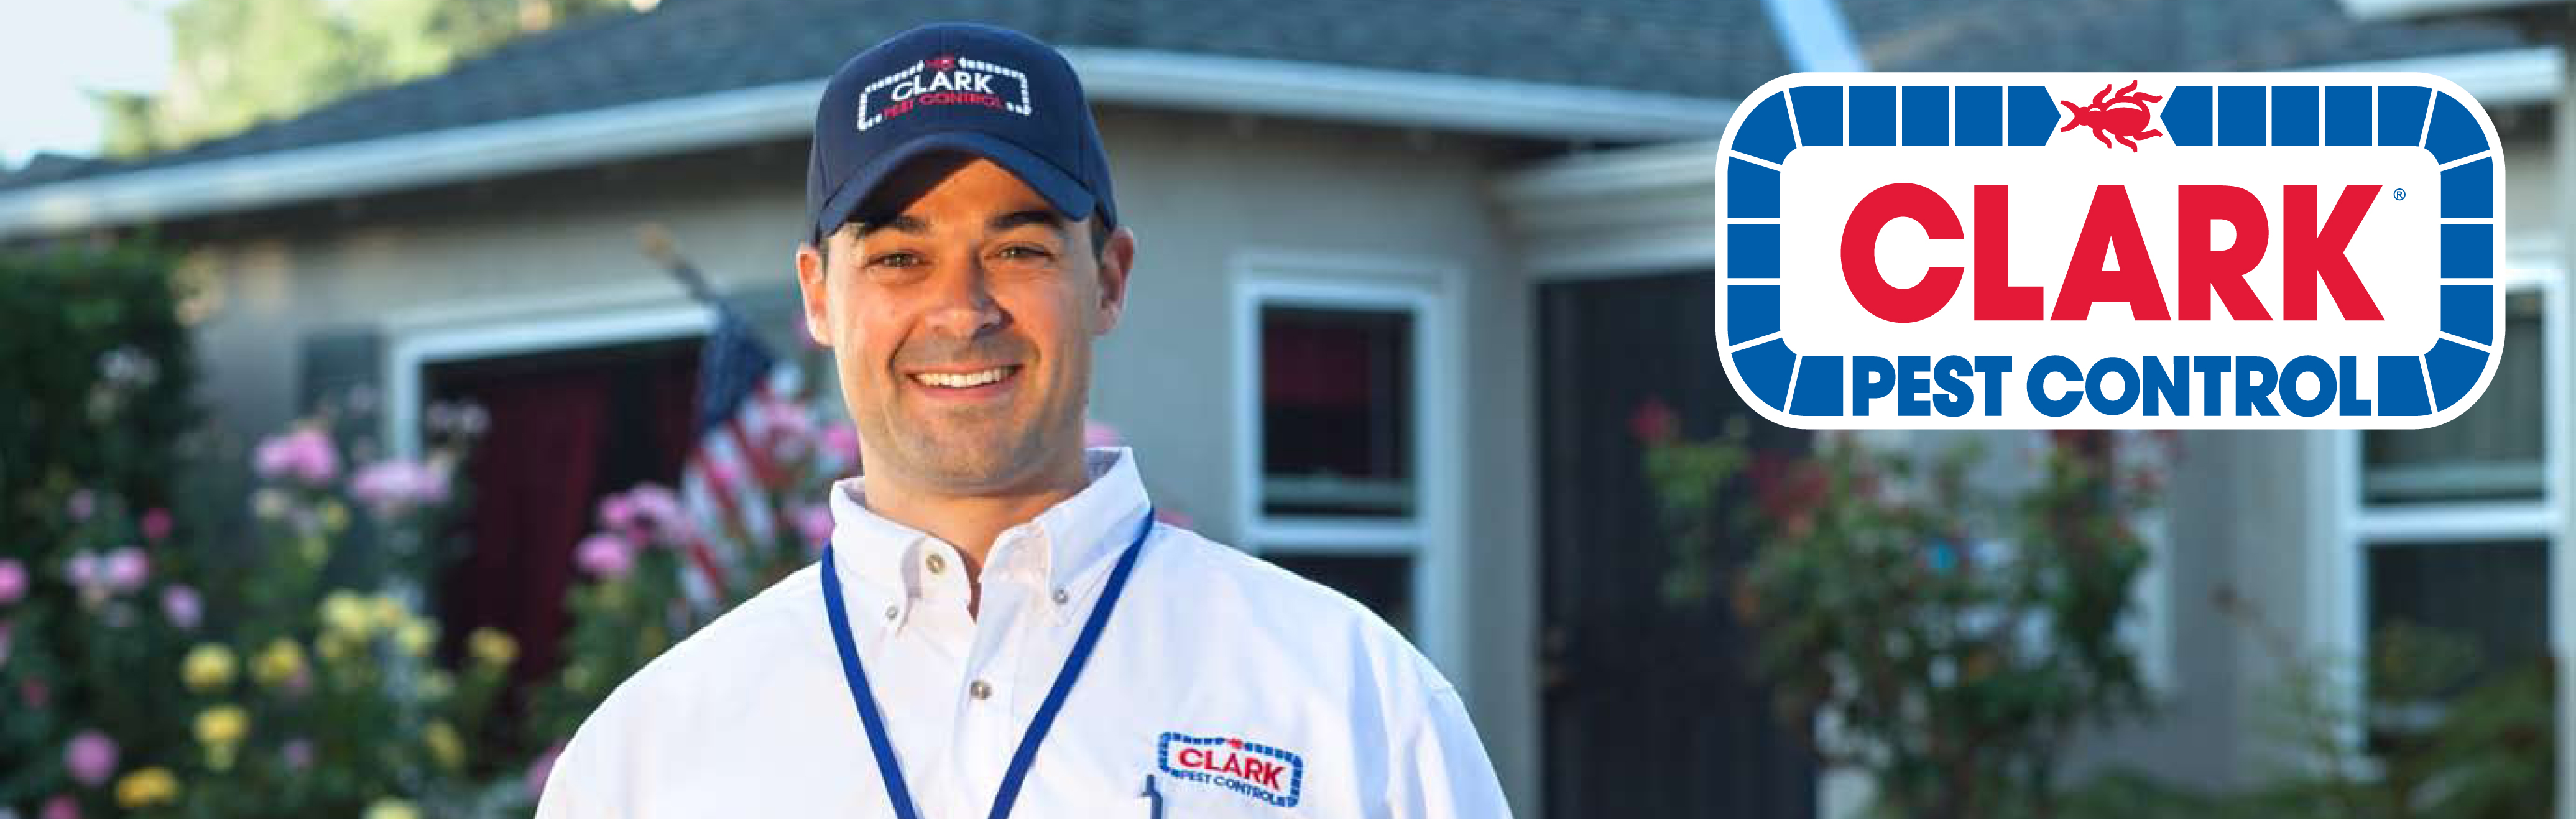 Clark Pest Control reviews | Home & Garden at 180 Eaton Road - Chico CA